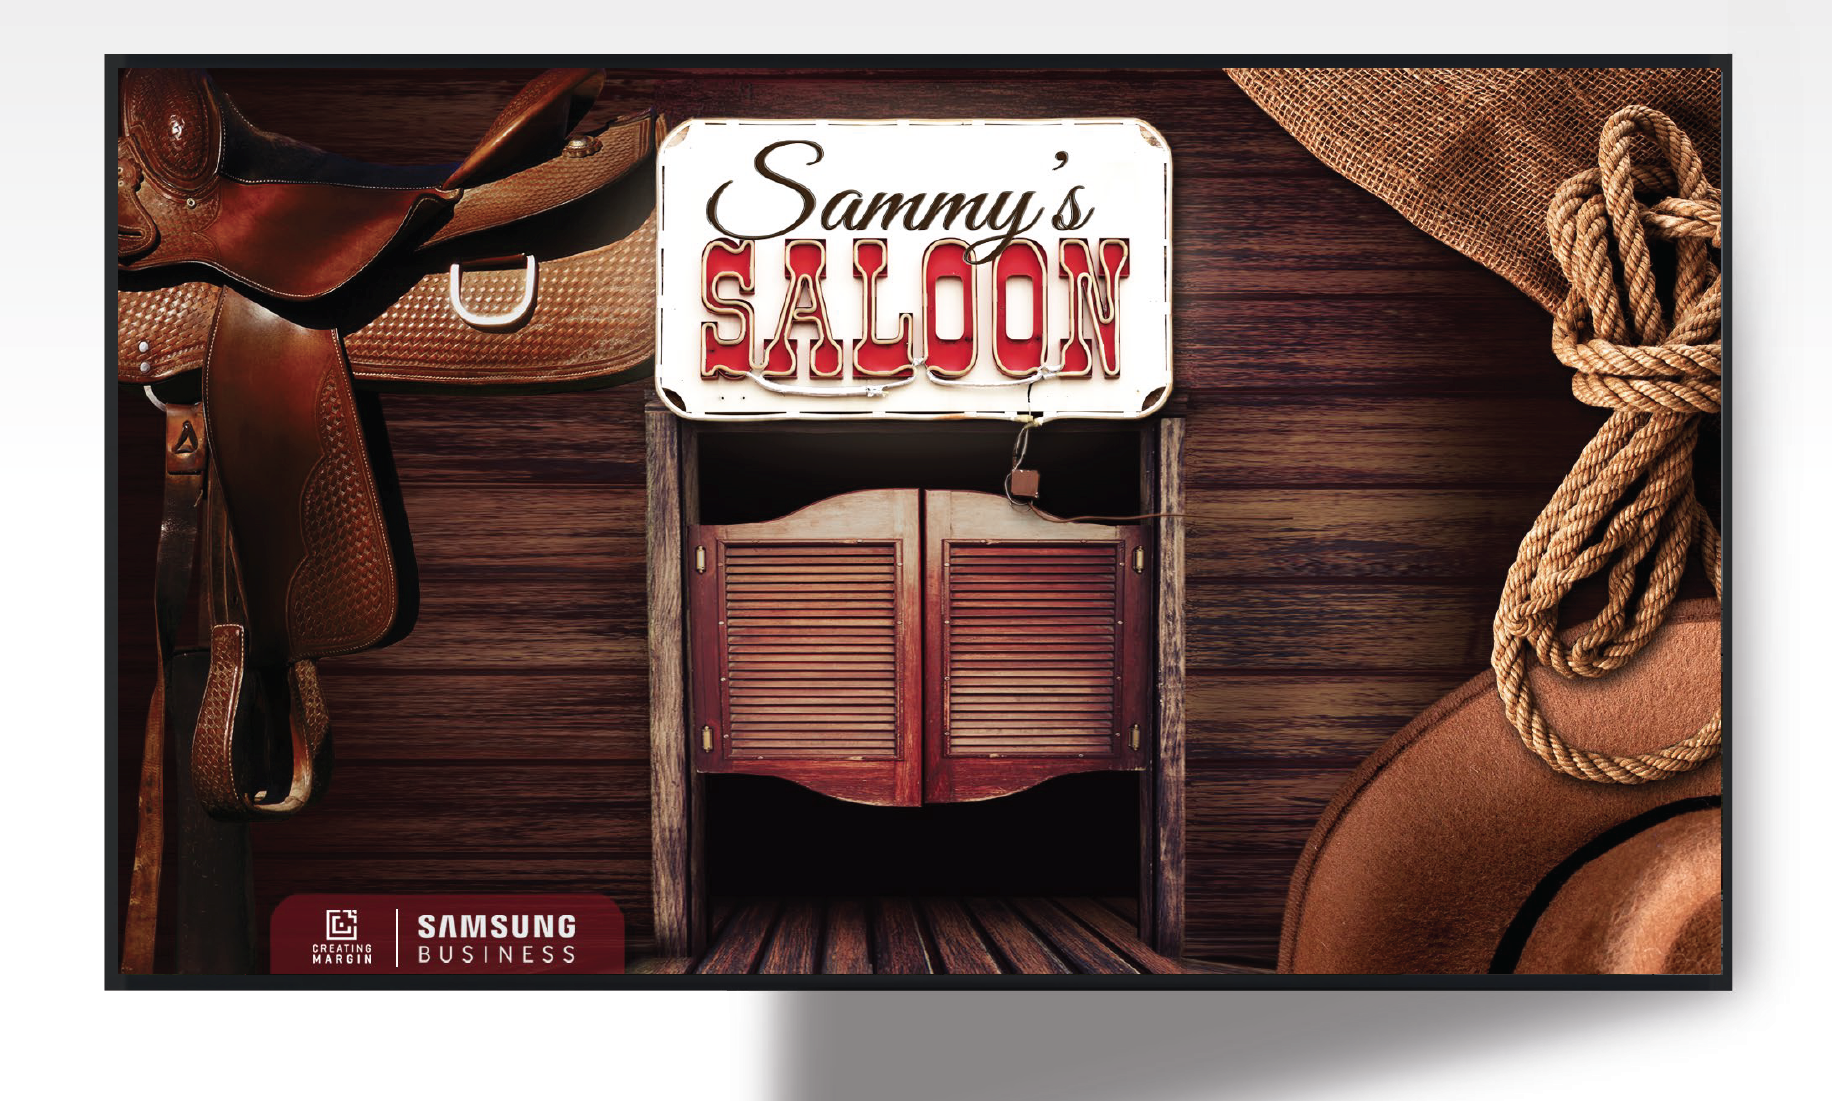 Sammy's Saloon -Samsung Video Screen